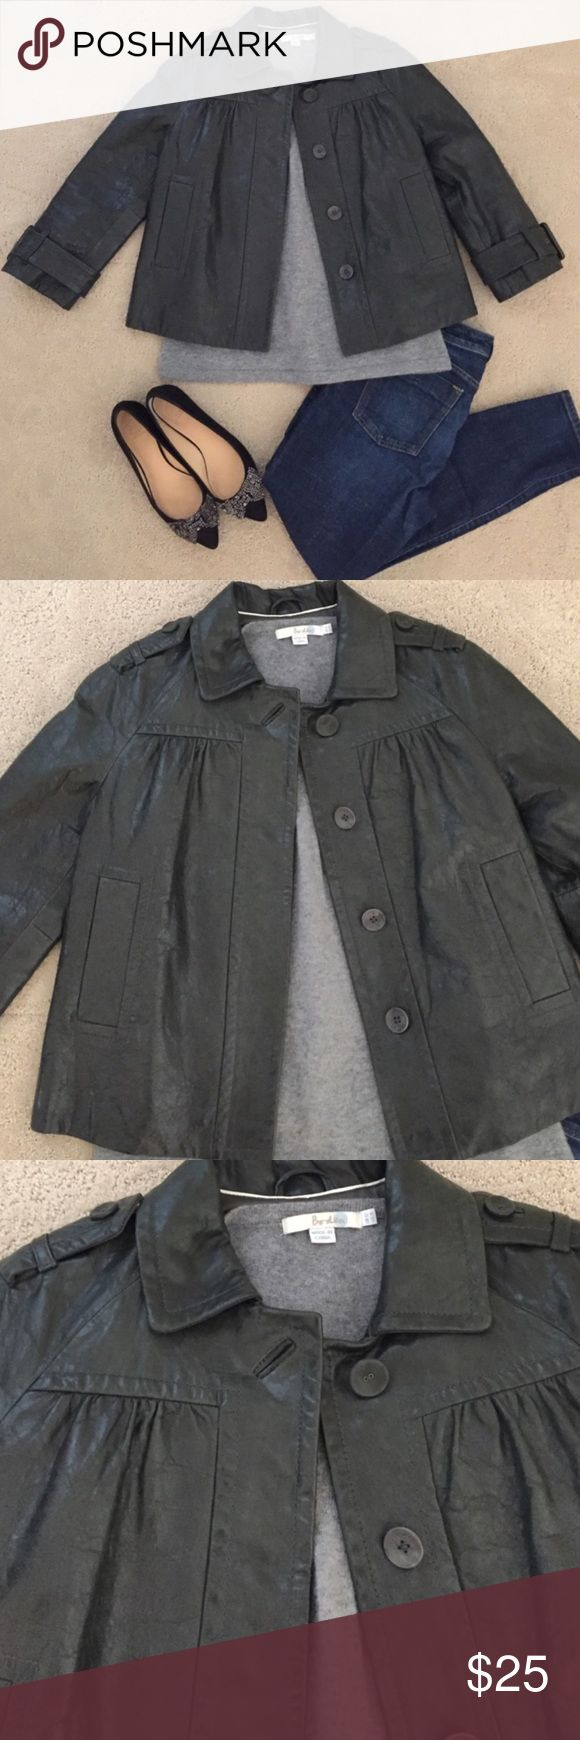 Buttery Soft Banana Republic Leather Jacket Small Pretty vintage style Banana Republic leather jacket.  Great condition with very minor wear.  Greenish grey with bracelet length sleeves and a swingy fit.  Heavy soft leather.  Size small. Banana Republic Jackets & Coats Blazers